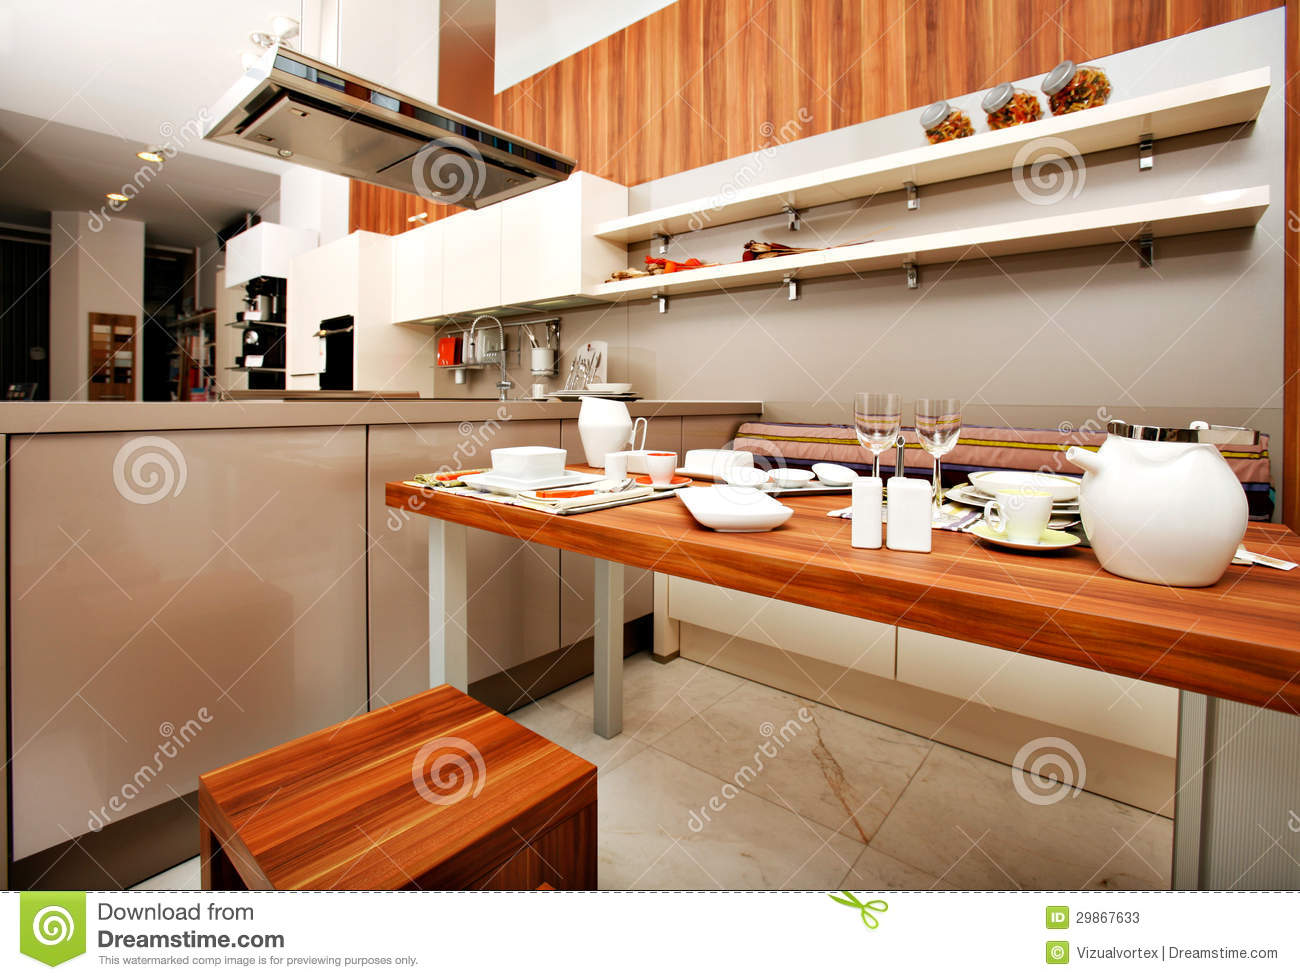 Belle cuisine moderne photos stock   image: 29867633